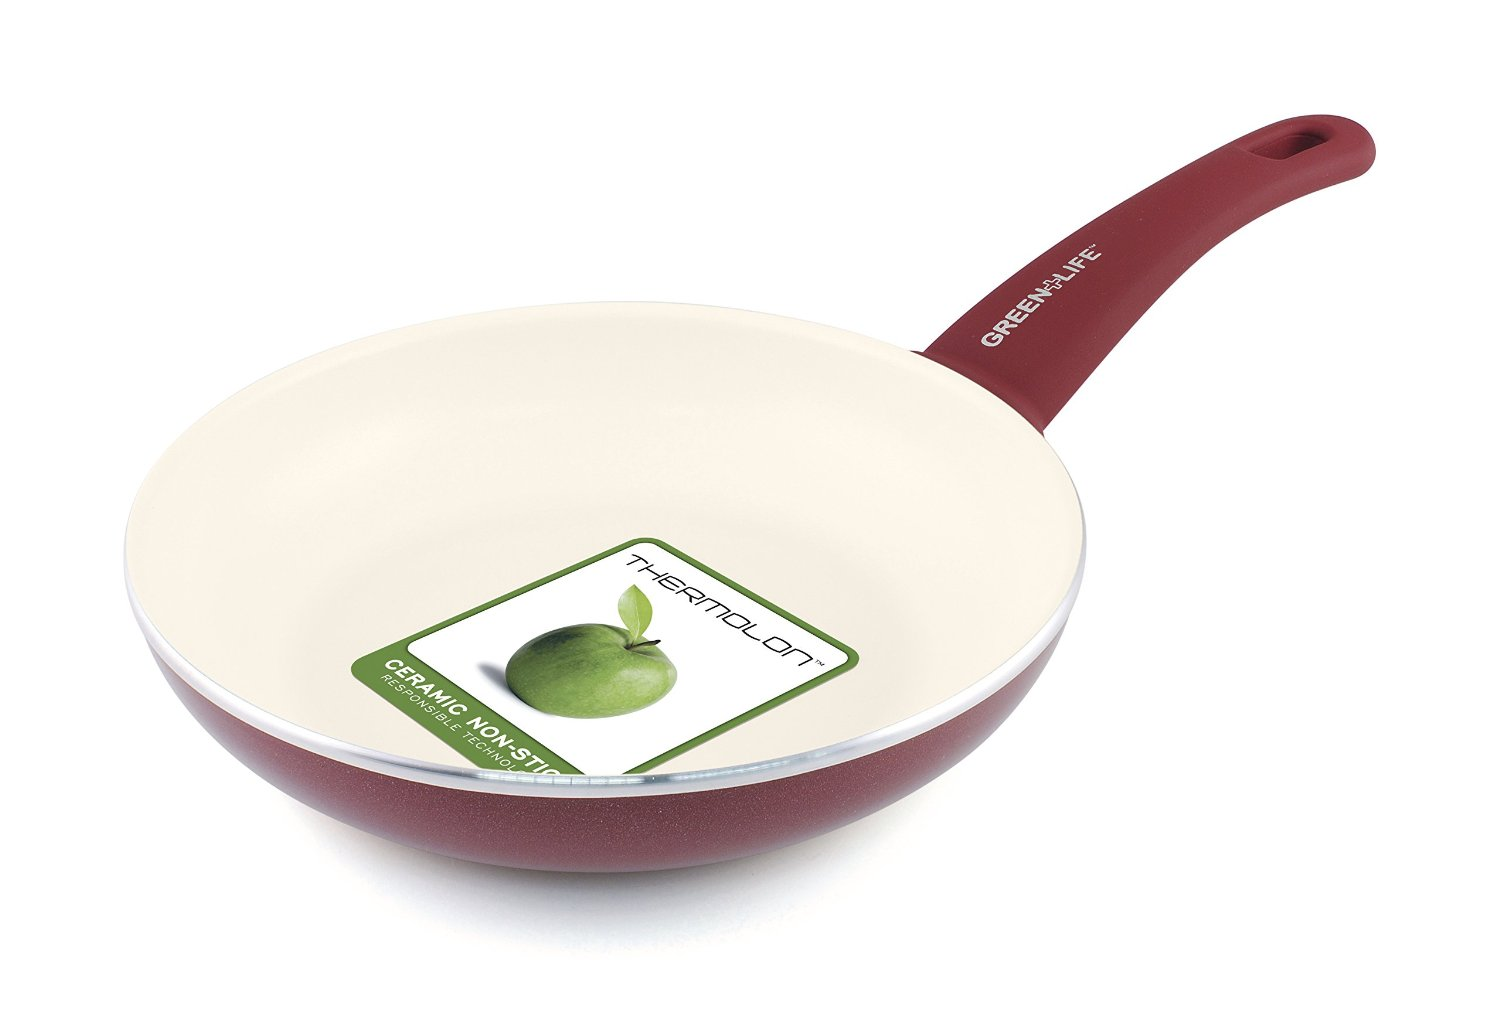 The Cookware Company with Soft Grip Red